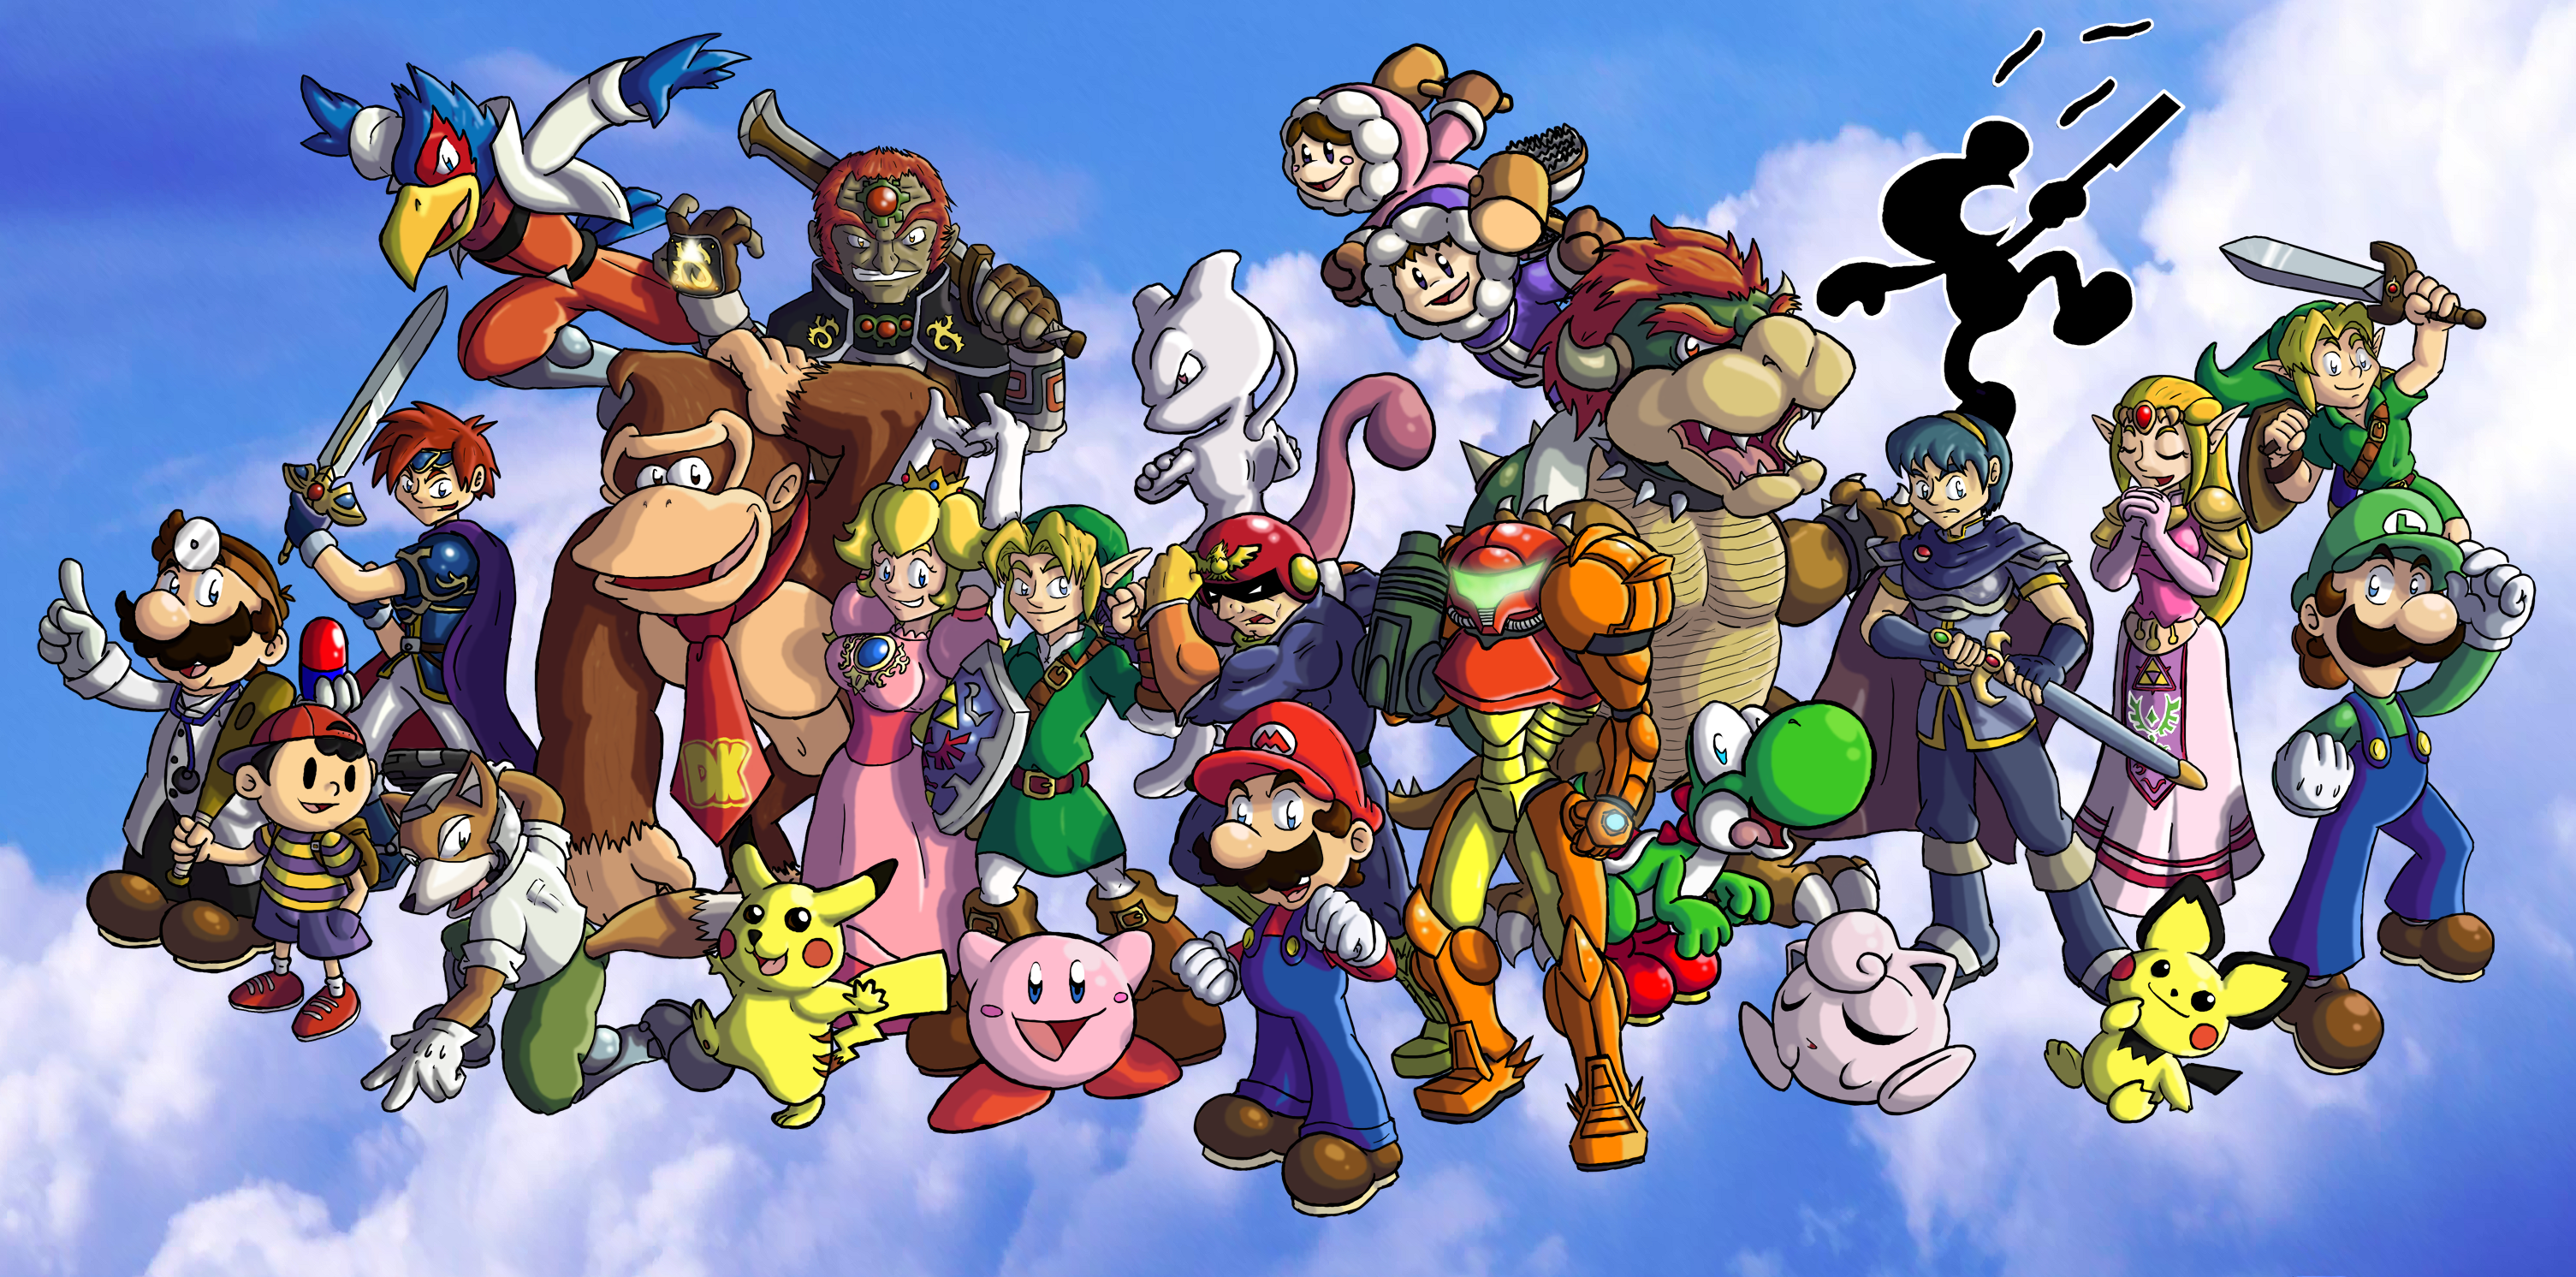 Free Download Super Smash Bros Melee By Chetrippo 3010x1492 For